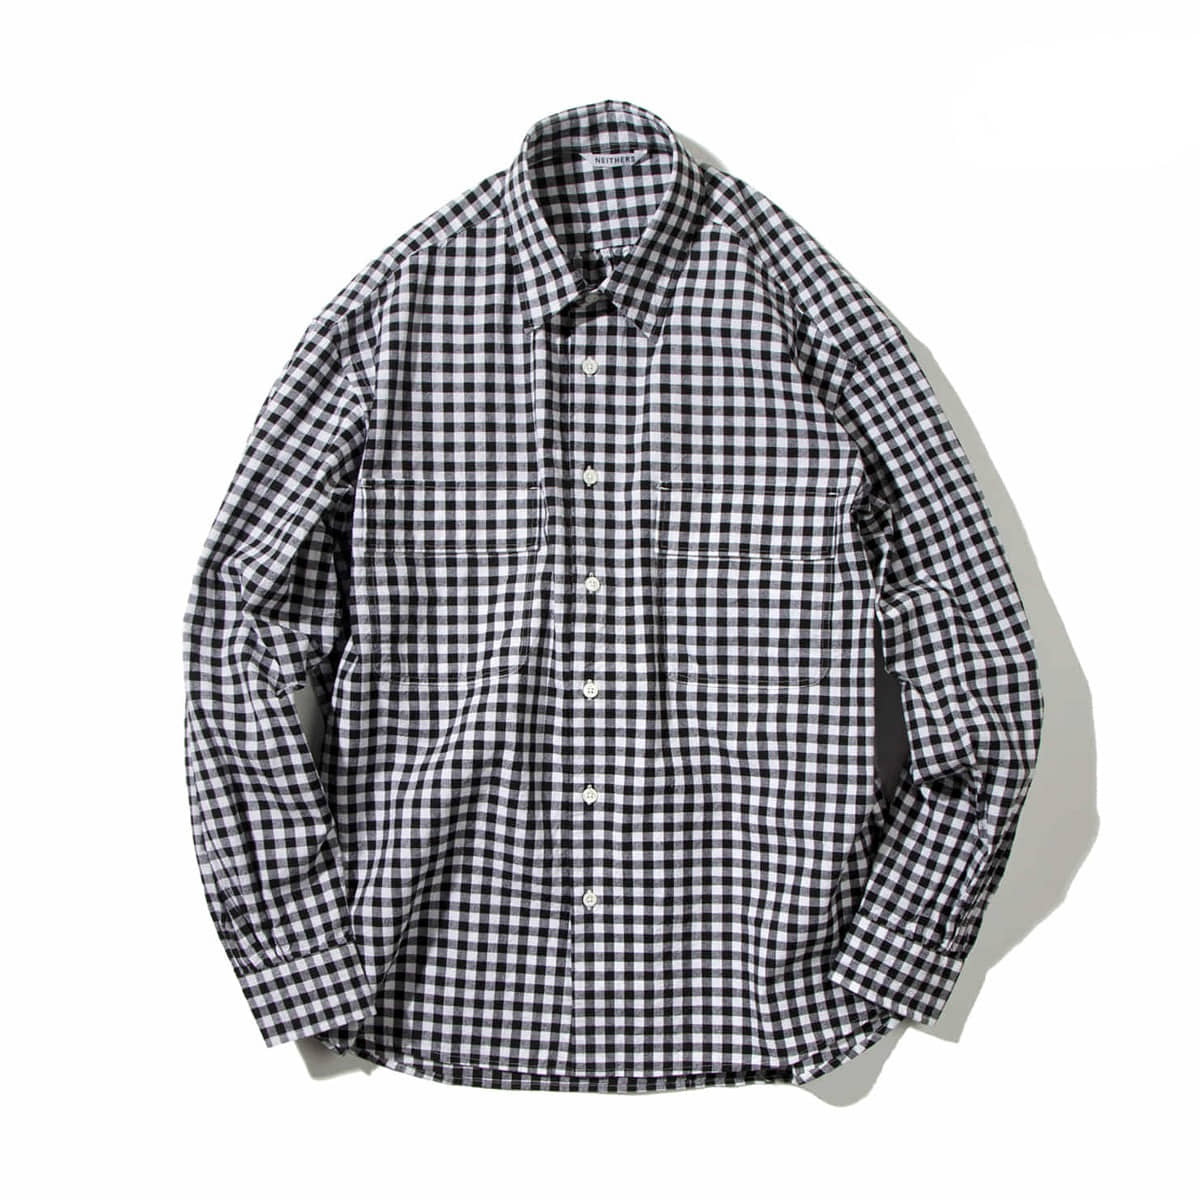 [NEITHERS] 211-15 2-POCKET WIDE SHIRT 'BL/WH'